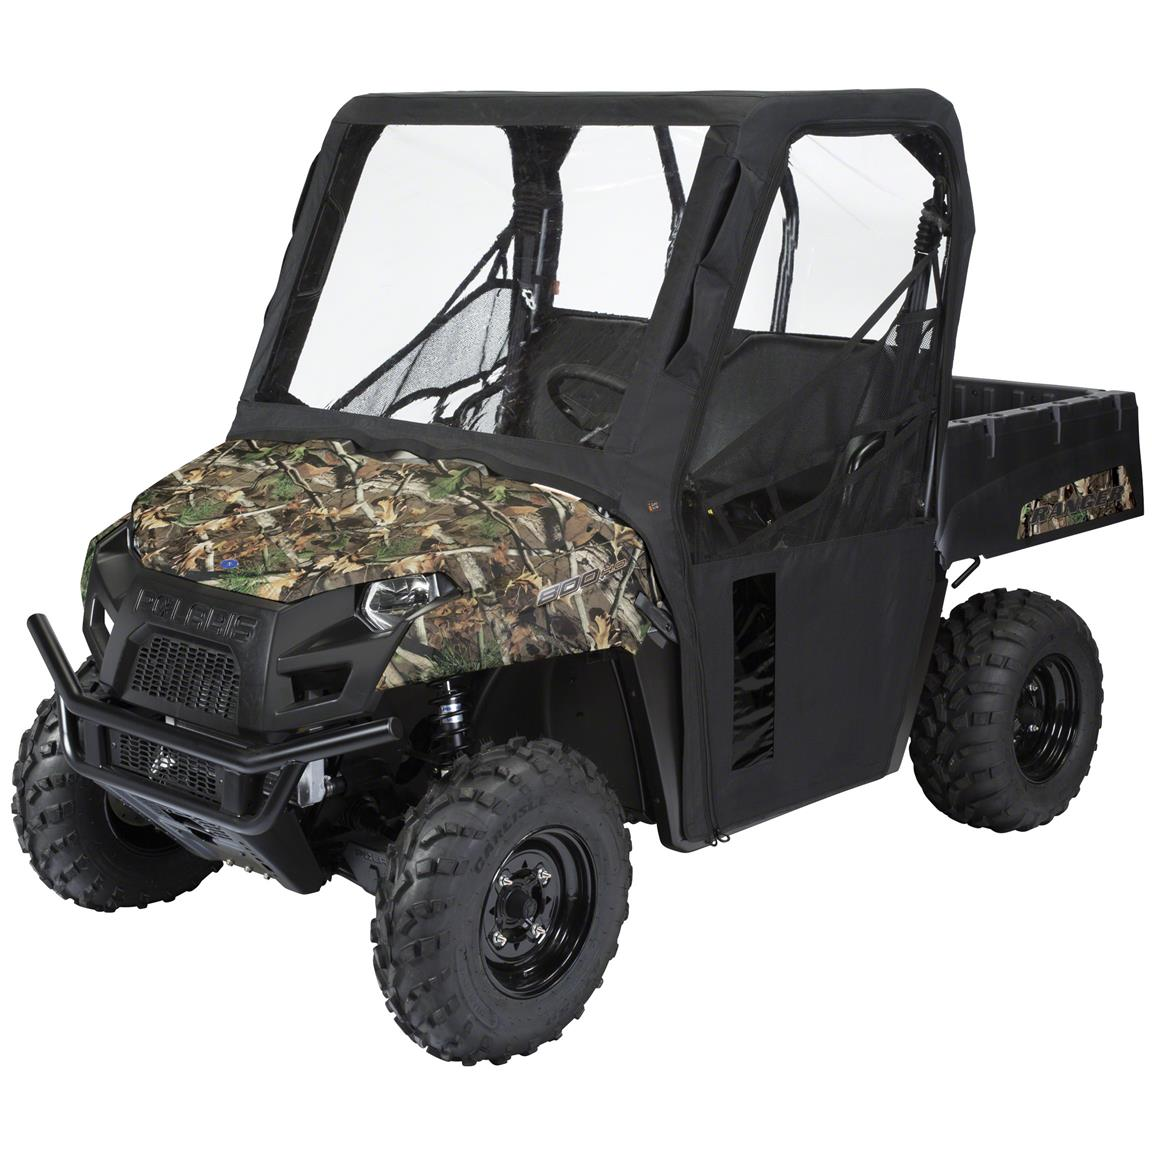 Quad Gear UTV Cab Enclosure, Polaris Ranger Mid-Size 400, 500, 800 Series, Black